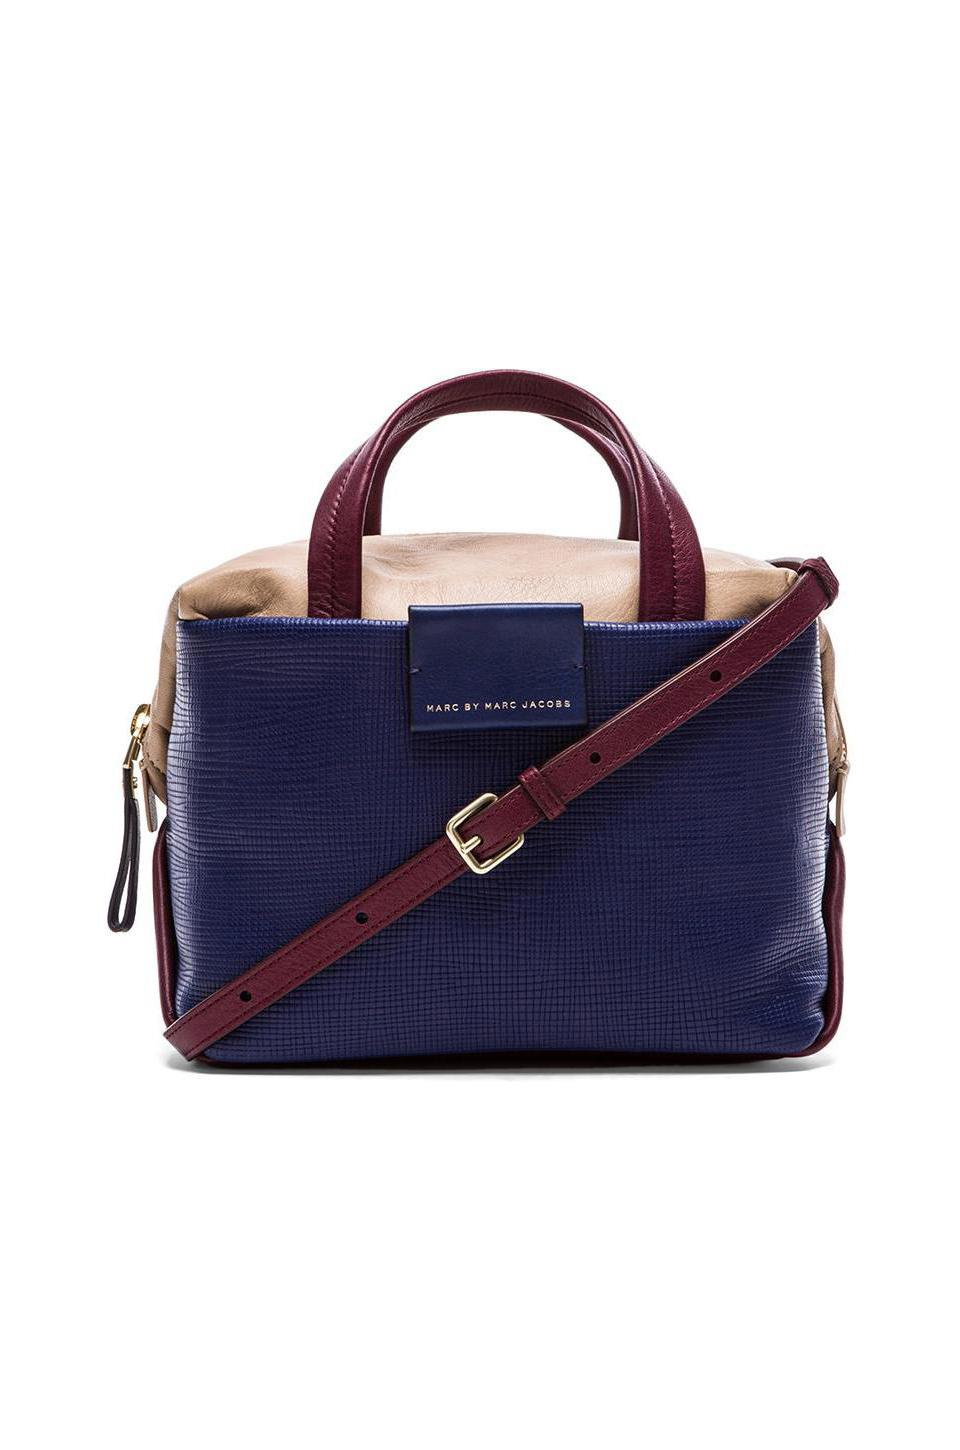 Marc by Marc Jacobs Box Satchel in Ultra Blue Multi